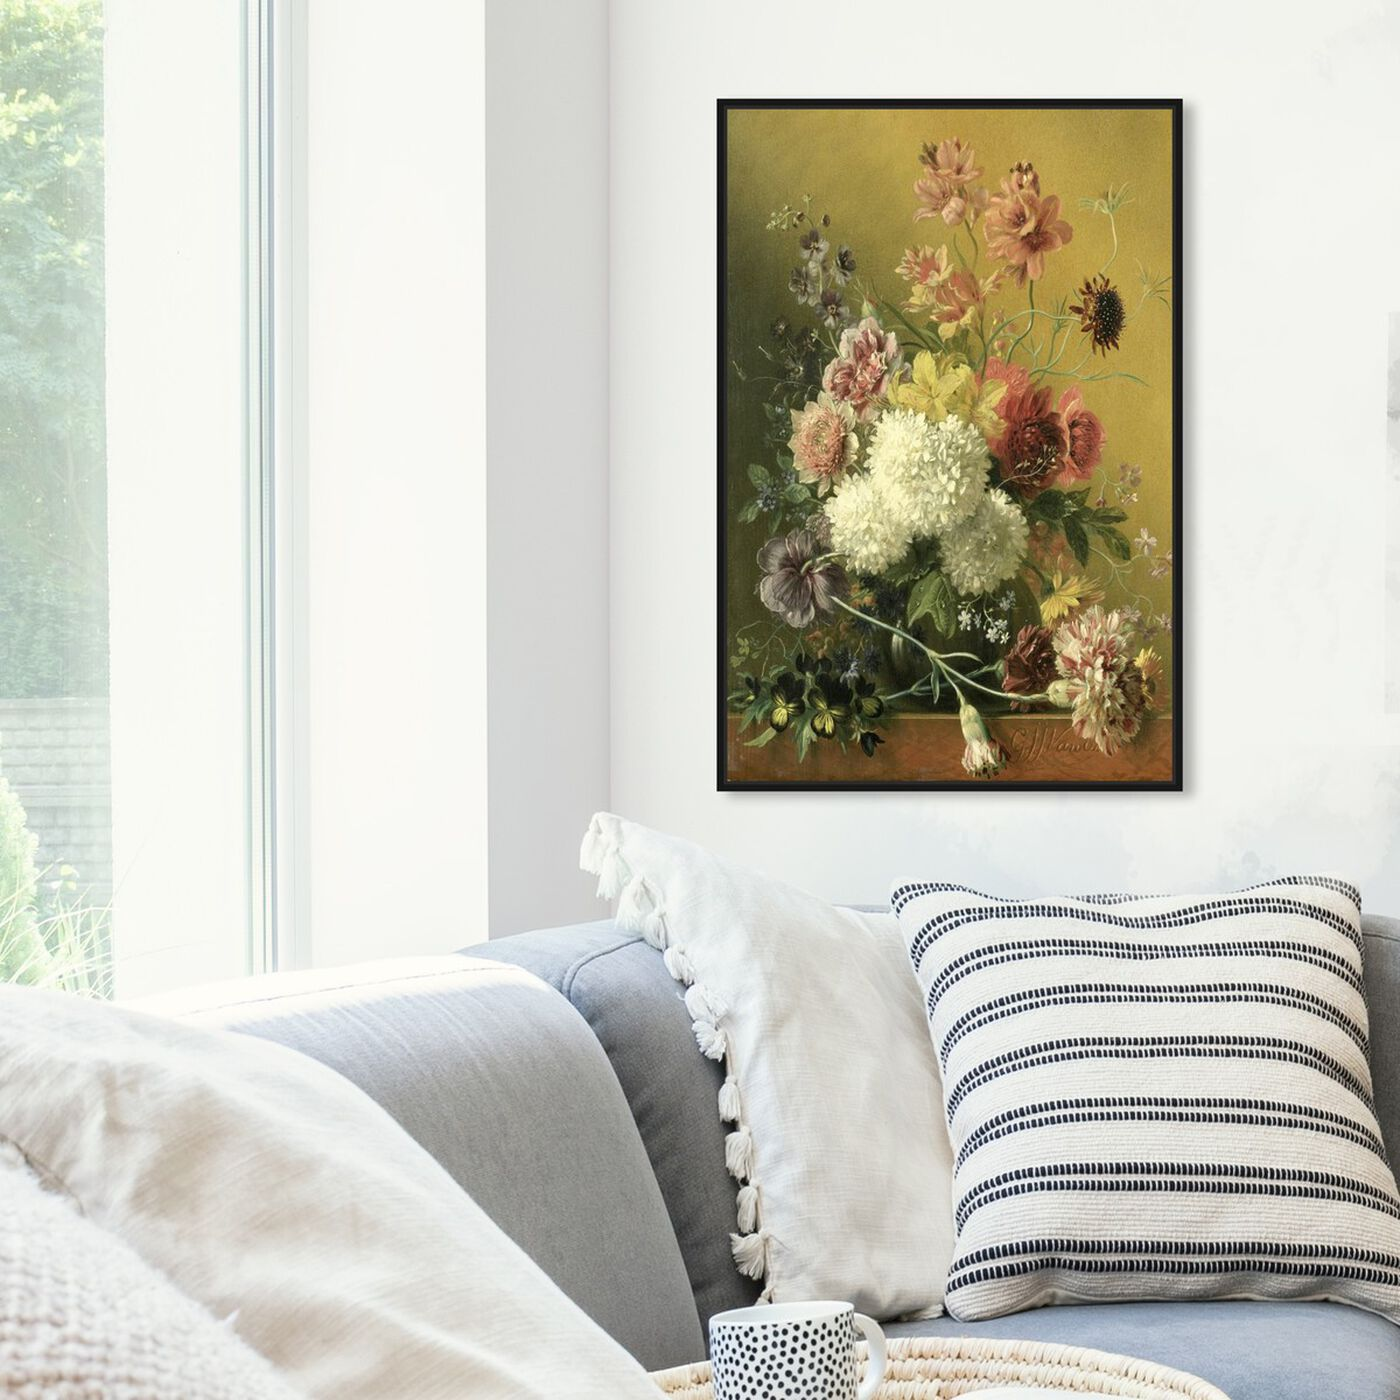 Hanging view of Flower Arrangement - The Art Cabinet featuring classic and figurative and french décor art.